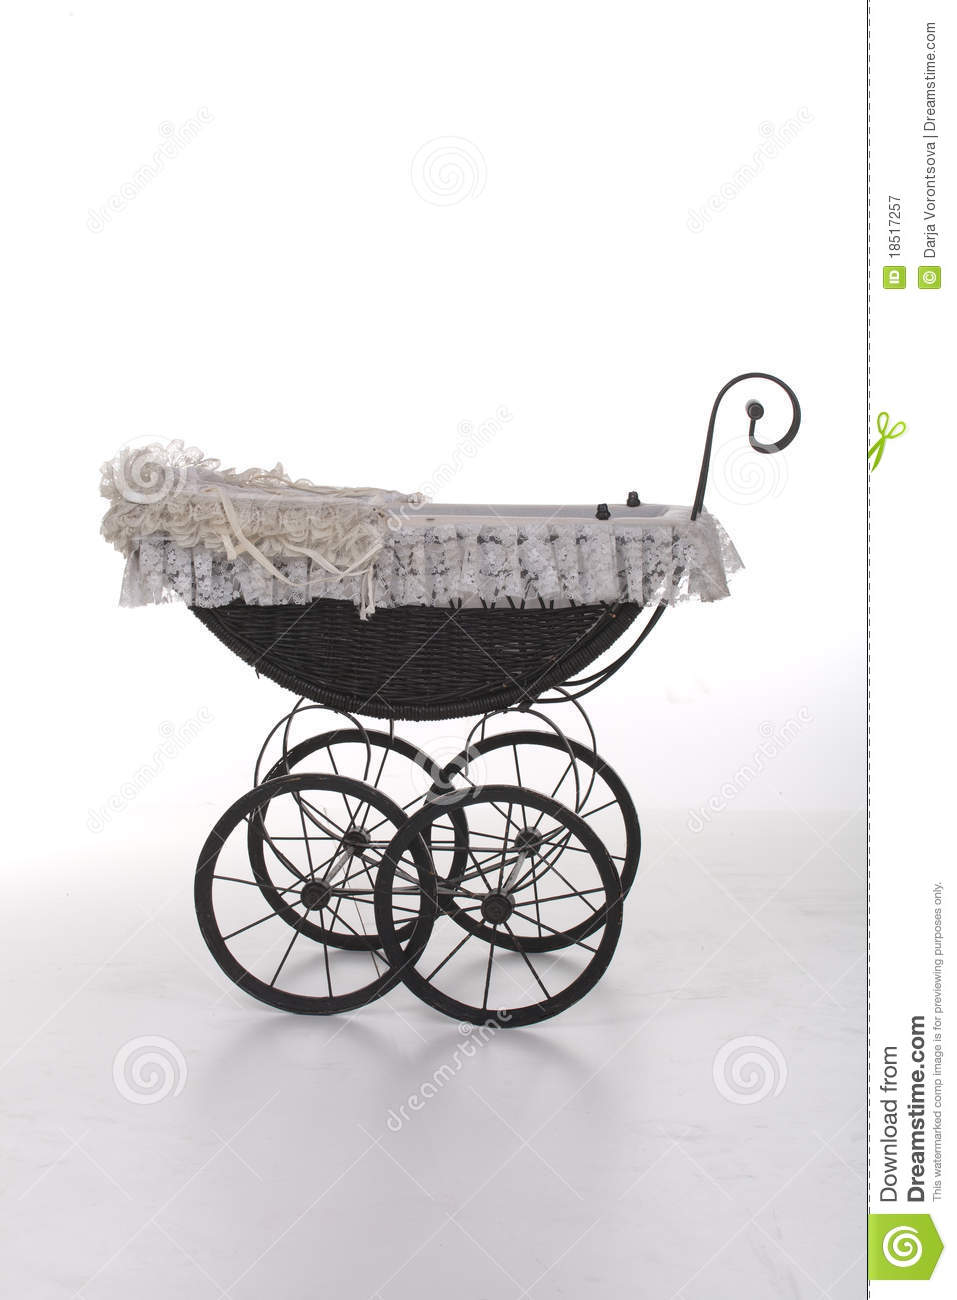 Vintage Toy Stroller Vintage Doll Stroller Stock Image Image Of Pram Pushchair